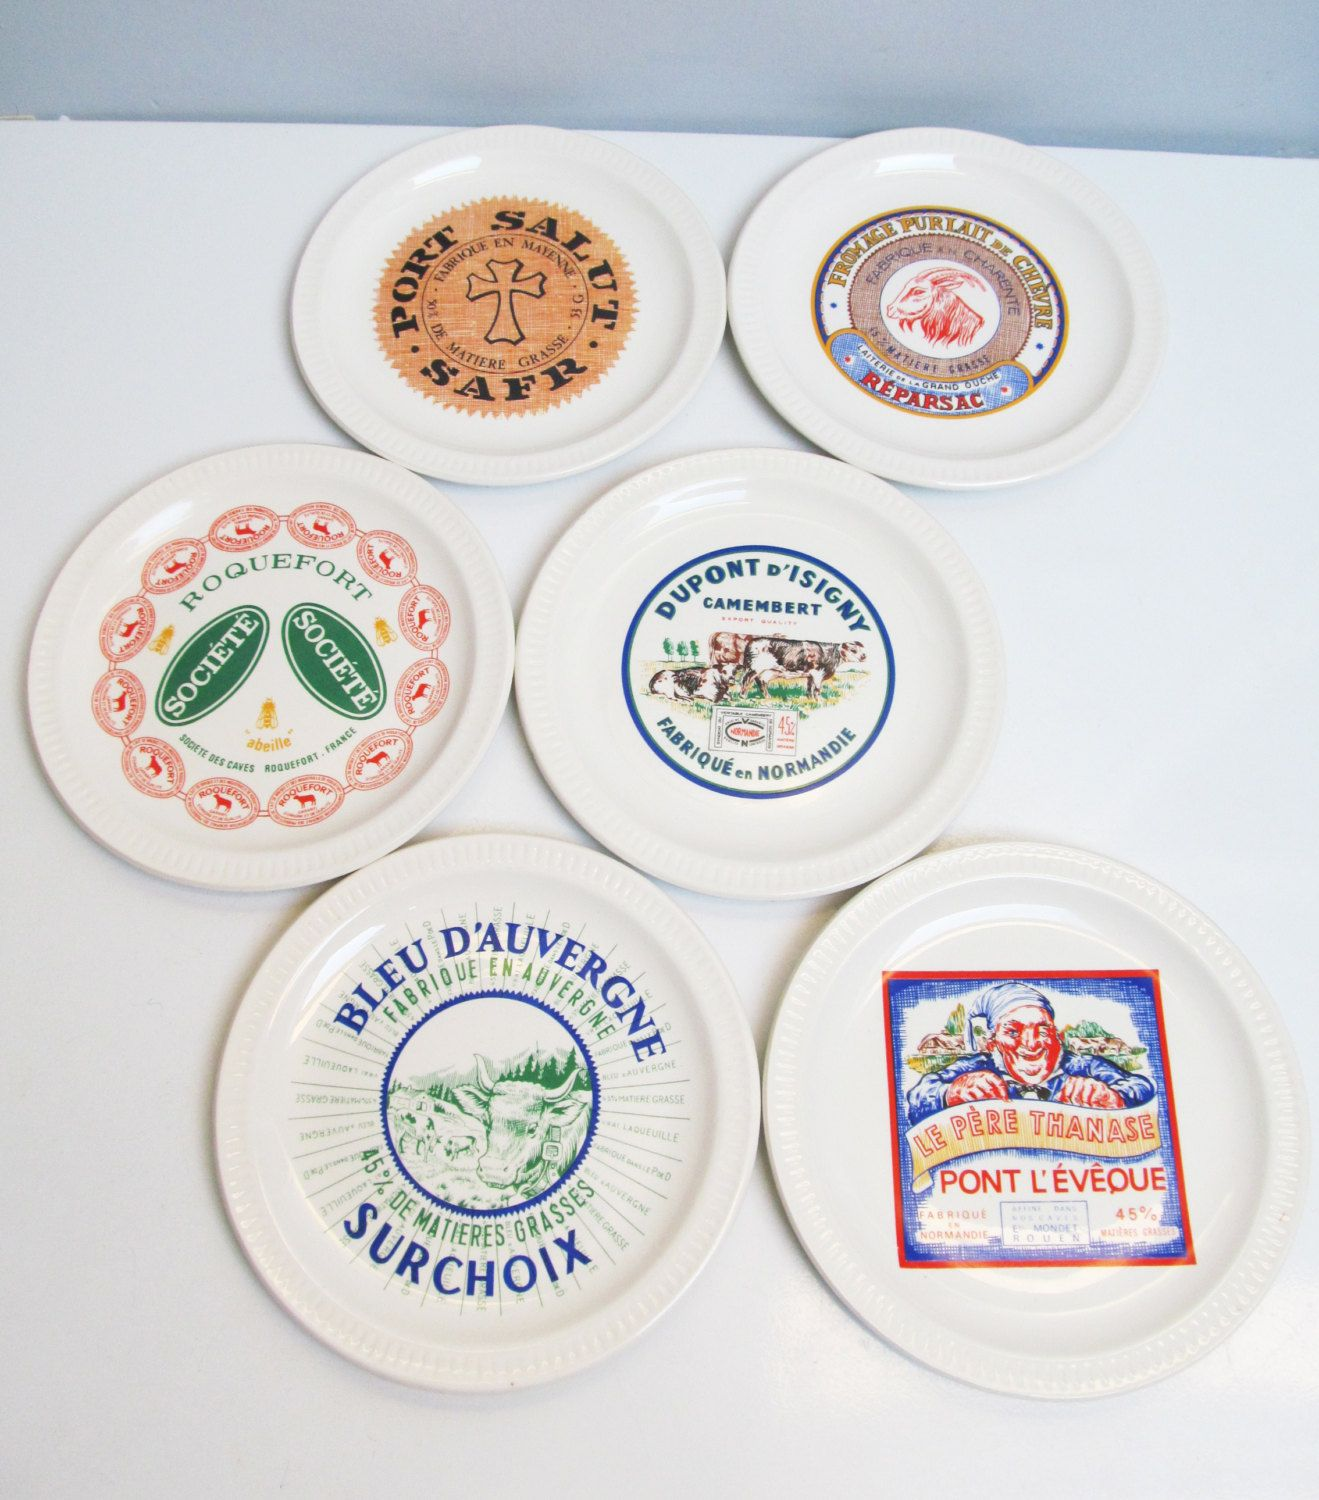 6 (six) vintage Faience Ceramic St Amand France Cheese Plates French collector serving plates  sc 1 st  Pinterest & 6 (six) vintage Faience Ceramic St Amand France Cheese Plates French ...